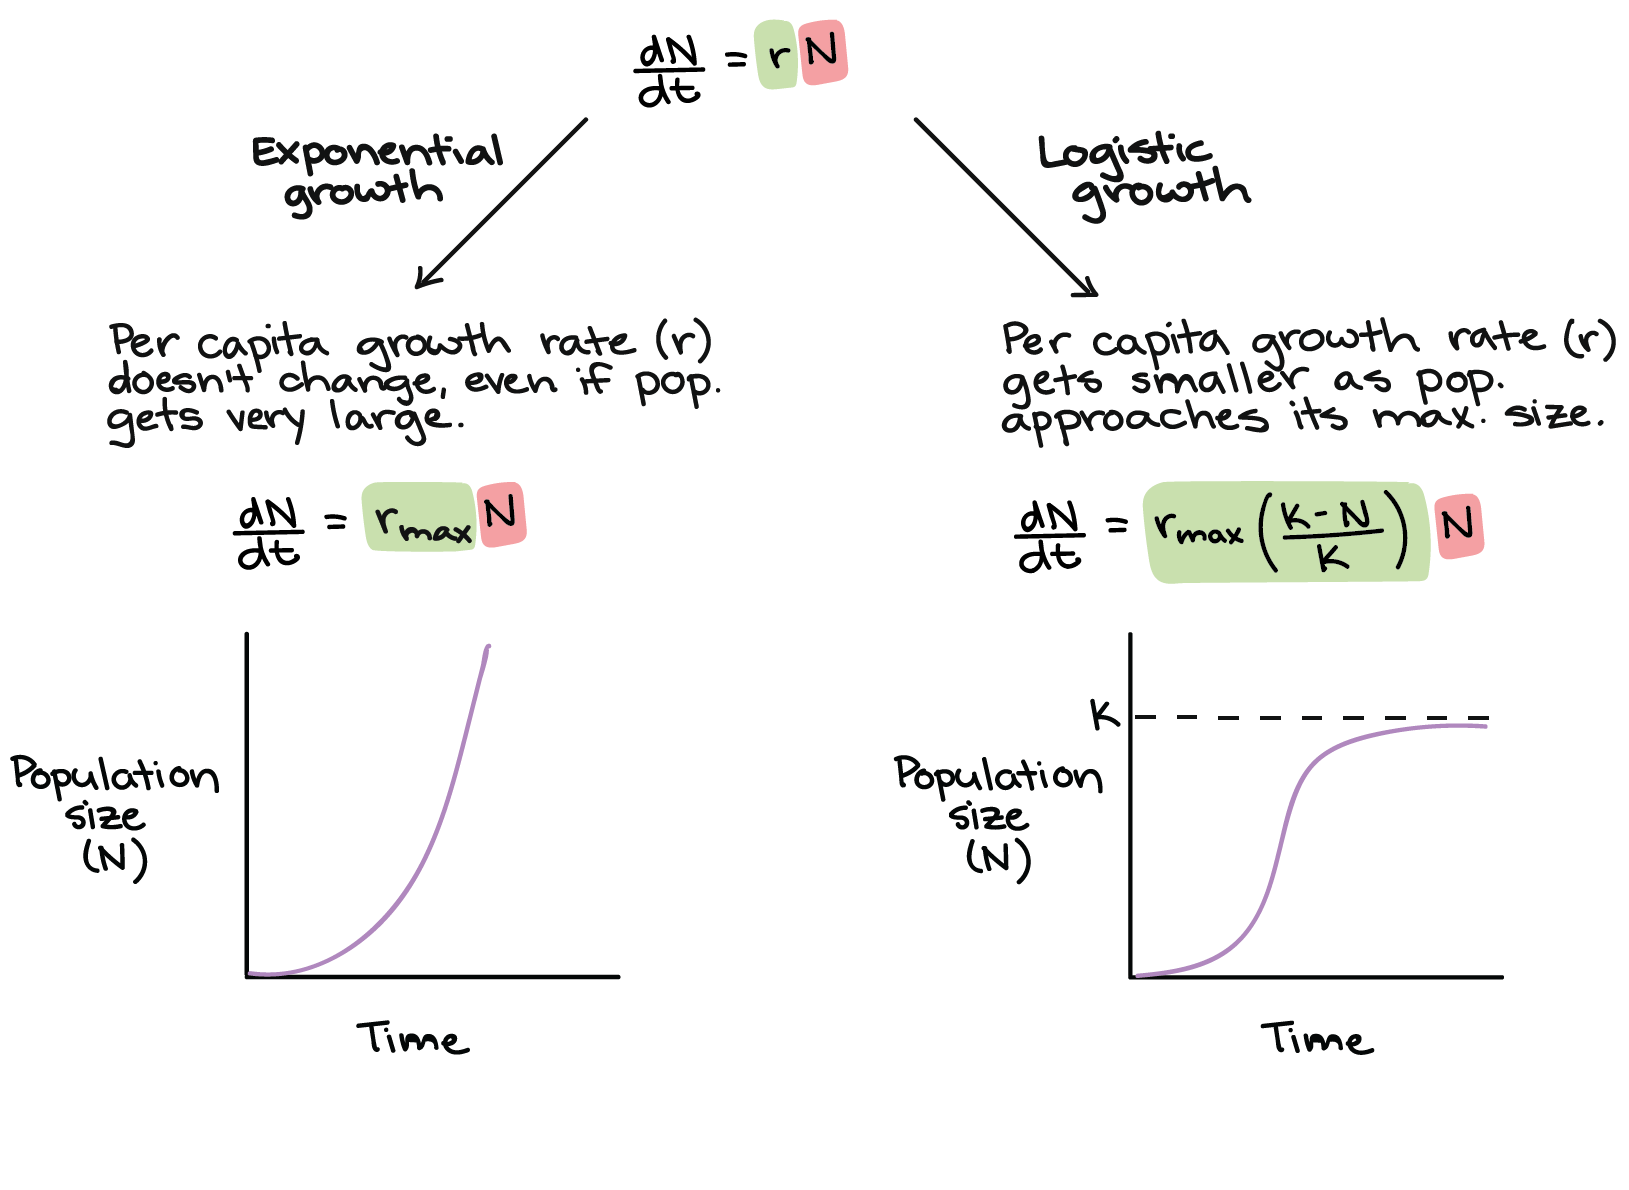 Exponential growth equations